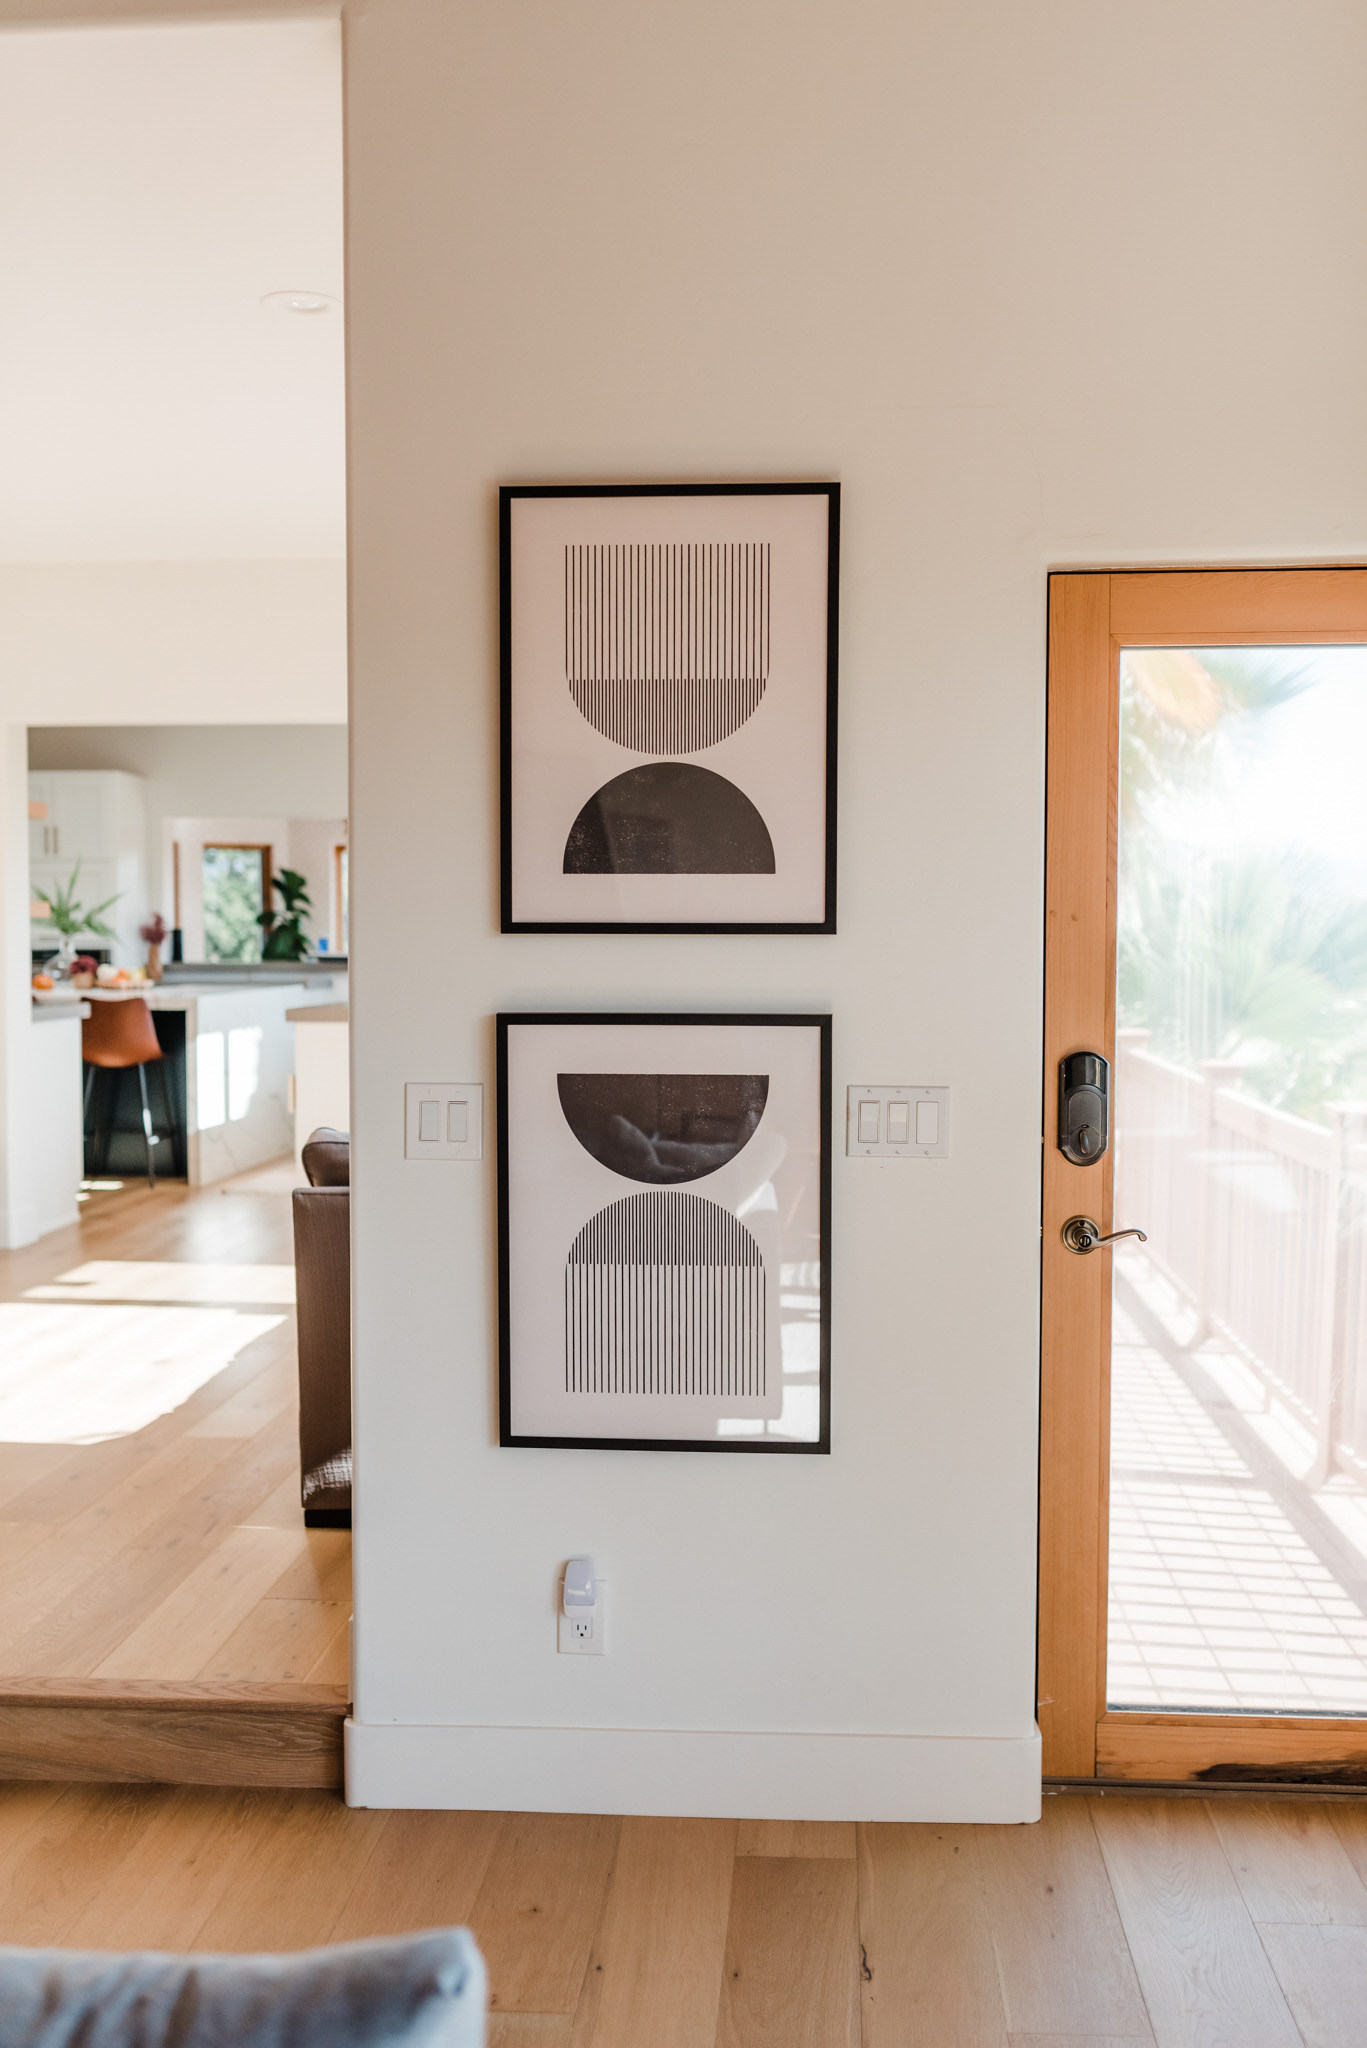 Minted Art by popular life and style blog, Navy Grace: image of two framed Etsy Mid century style woodblock print in classic geometric shapes and neutral colors.